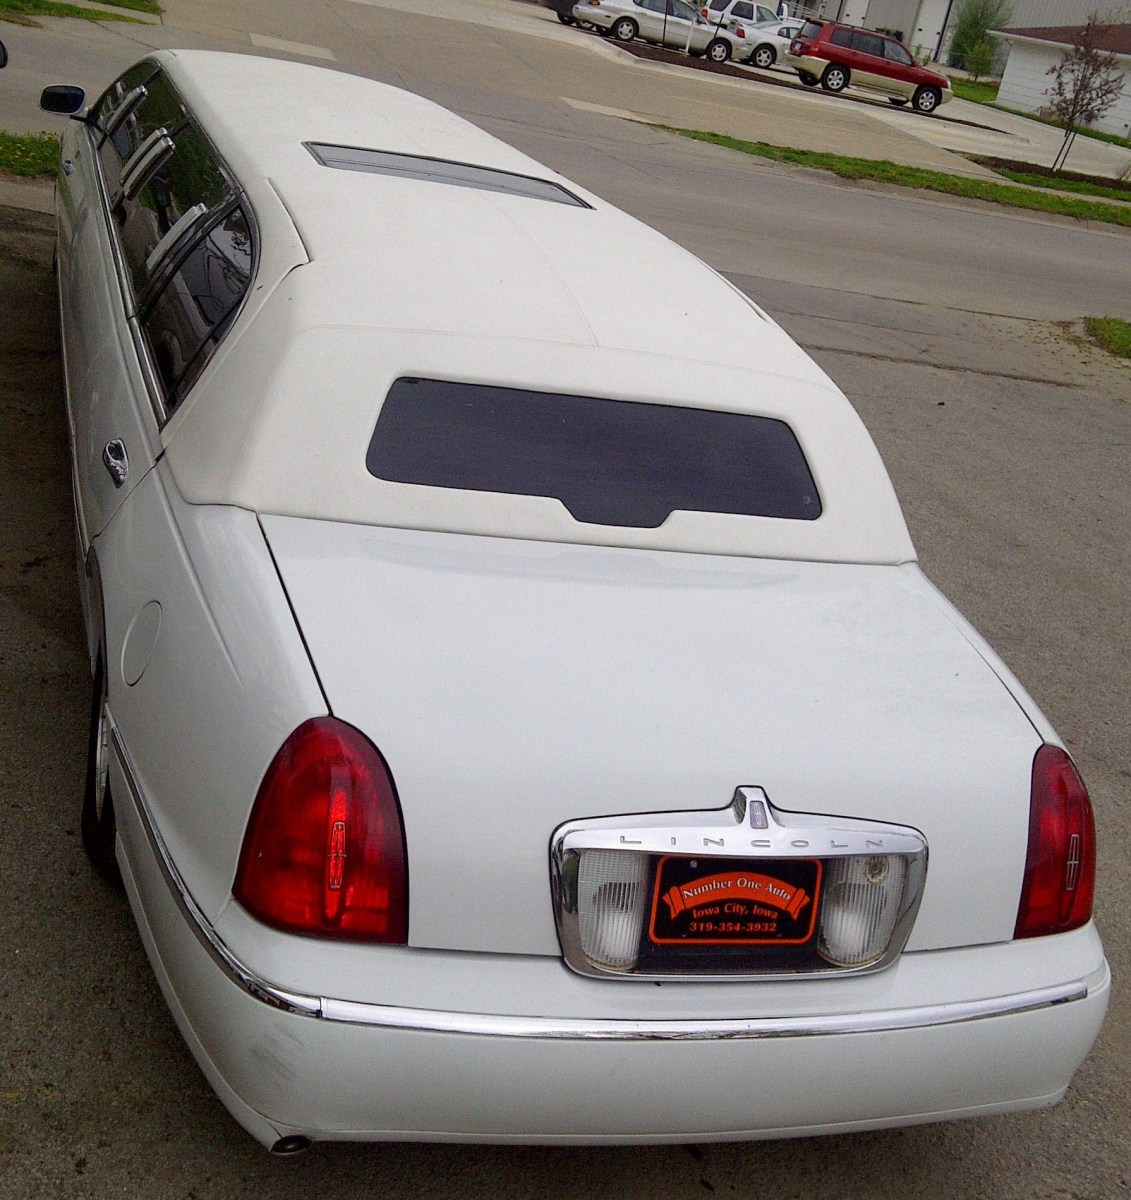 Lincoln Limo For Sale: Cost Of Limos And Limousine Service